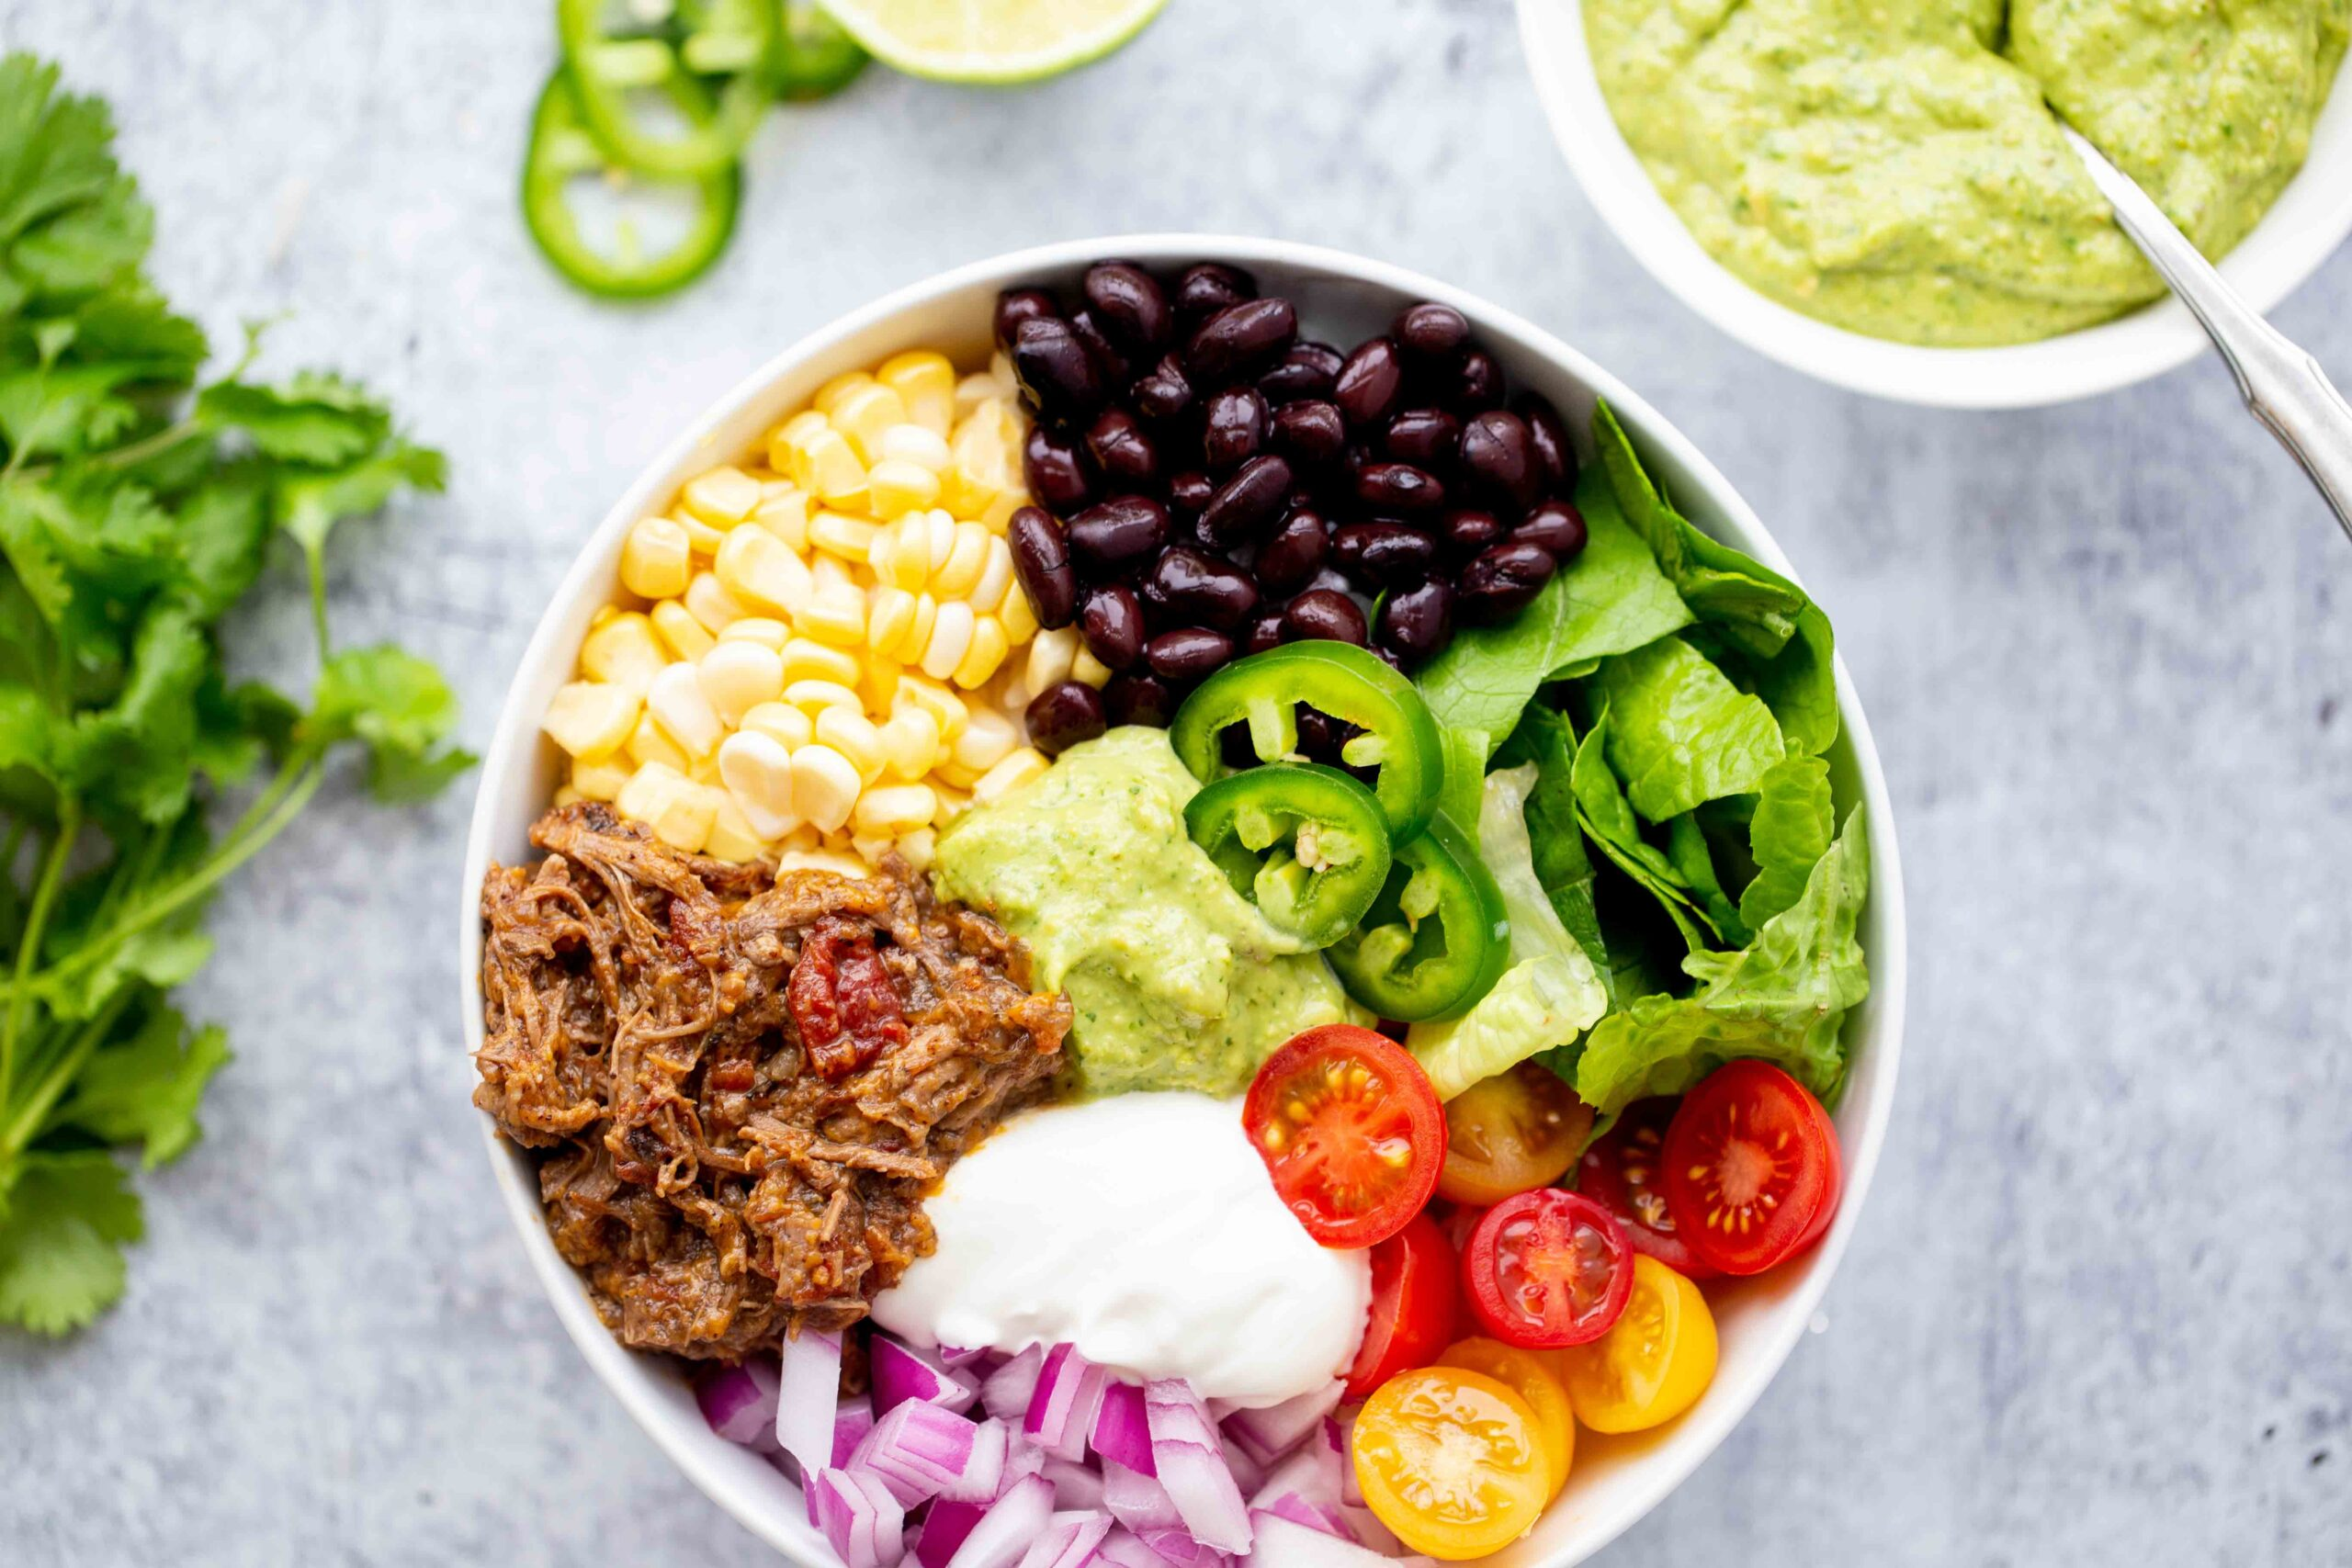 closeup overhead photo of a burrito bowl with shredded beef corn black beans lettuce tomatoes diced red onion sour cream jalapeños and avocado sauce on a concrete background with a bowl of avocado sauce in the background